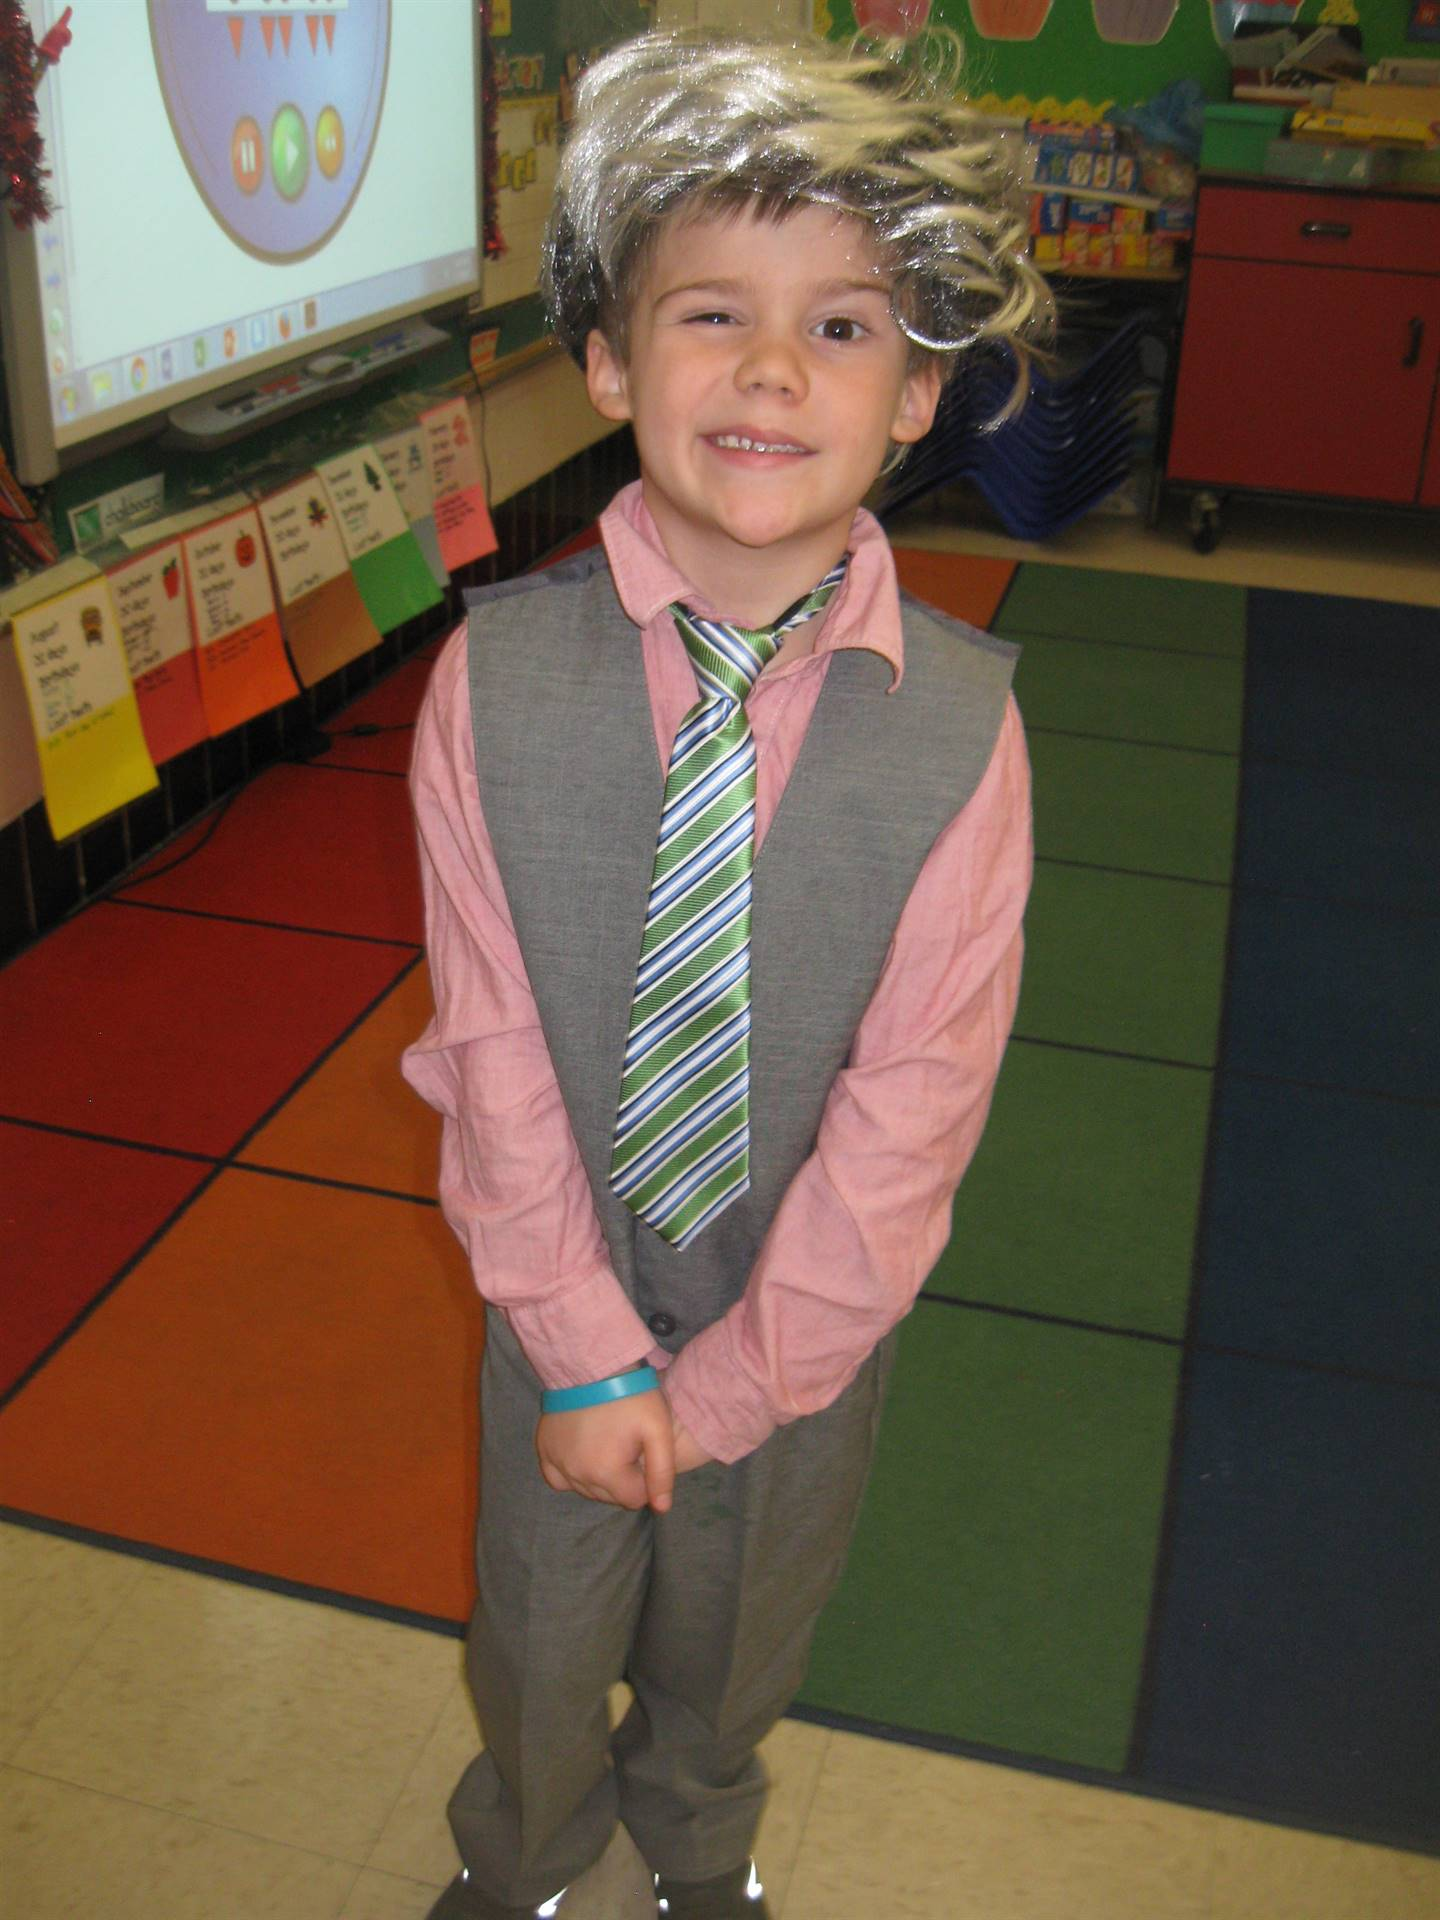 100th day costume